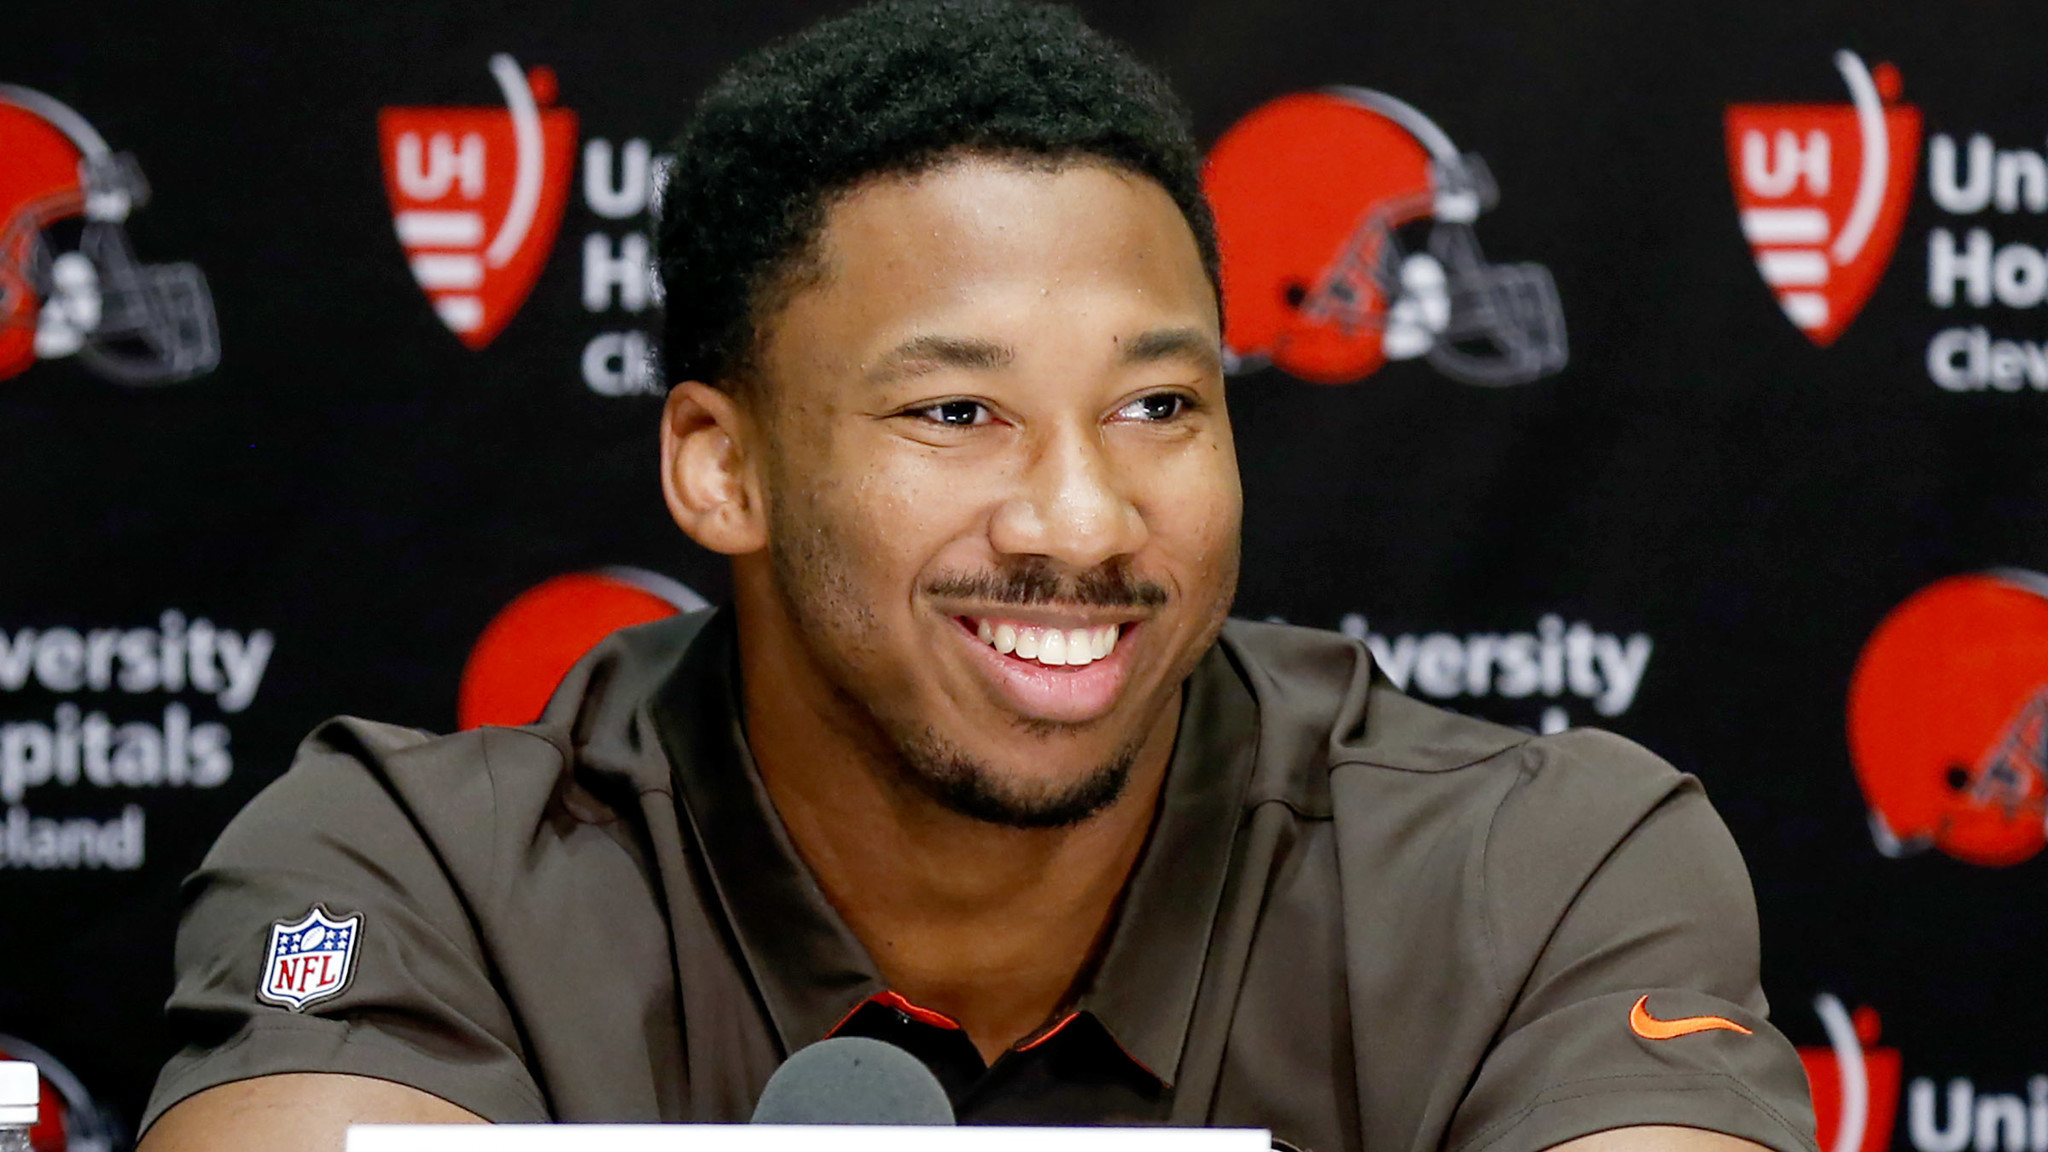 NFL: First overall draft pick Myles Garrett signs $30.4-million contract with Browns